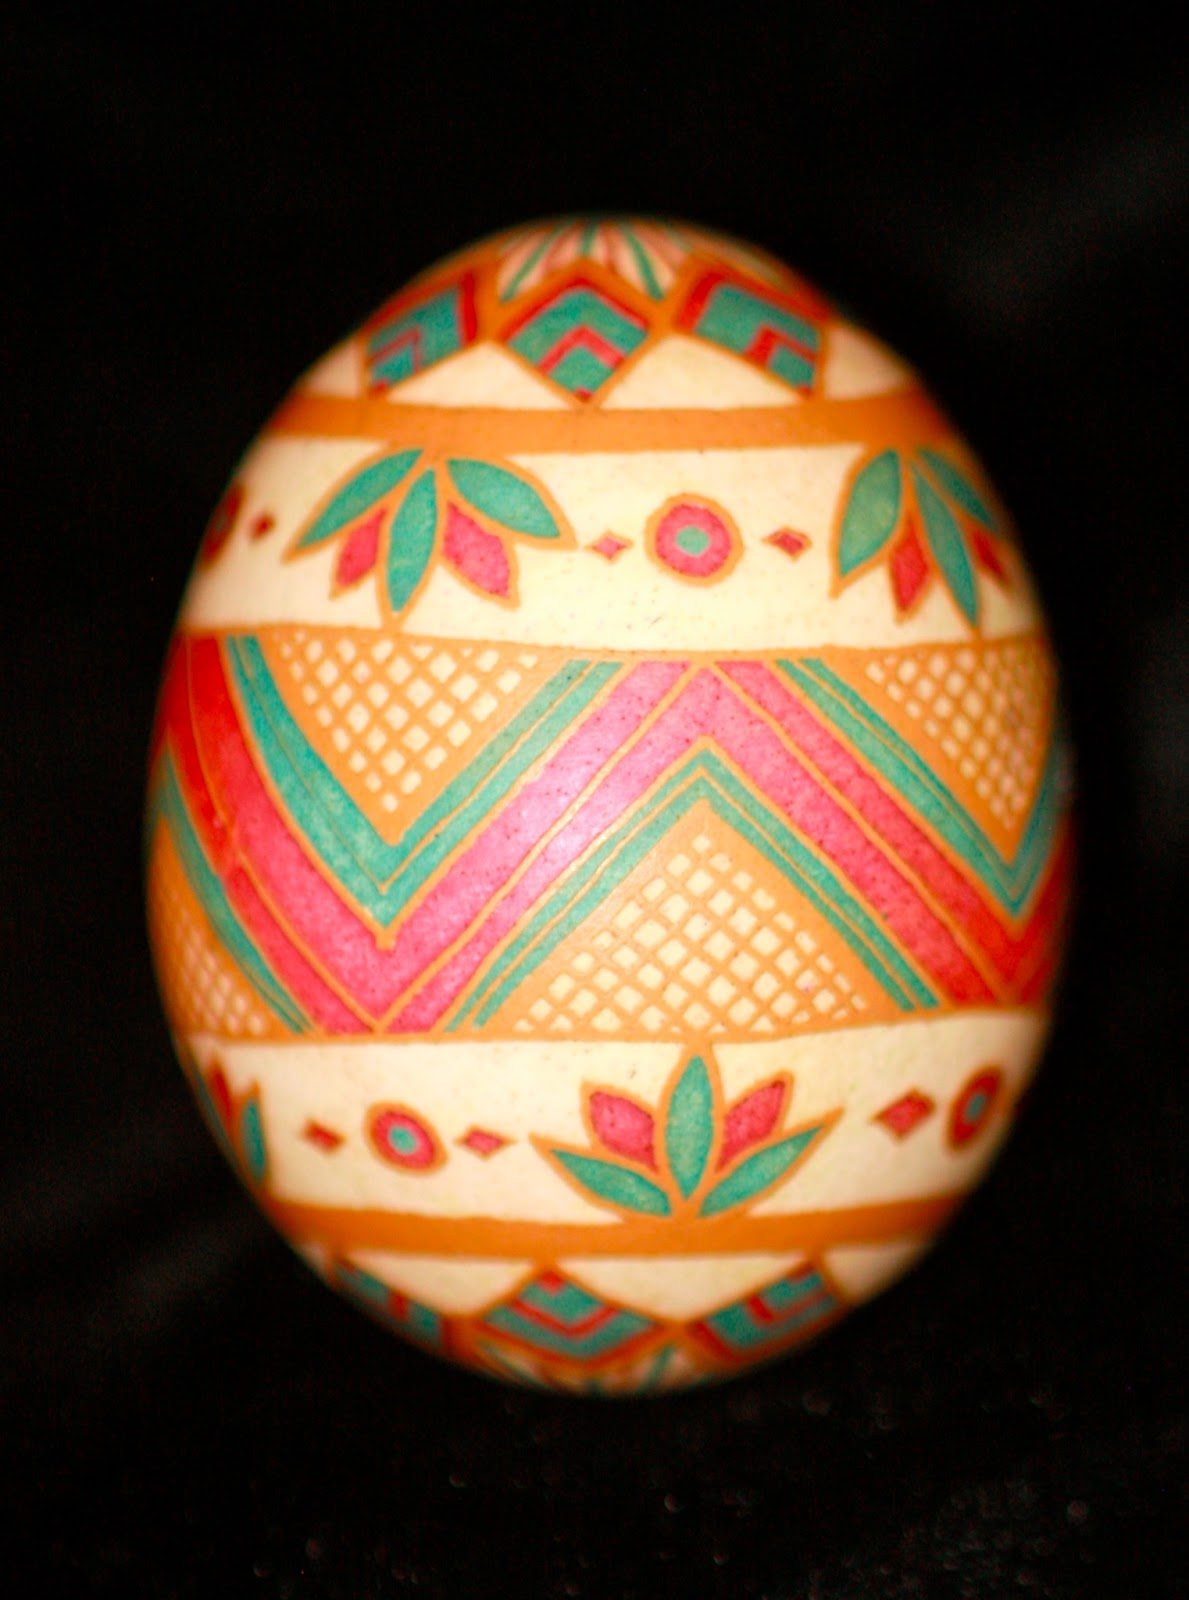 Katyegg Design Friday Egg Simple Design Muted Colors